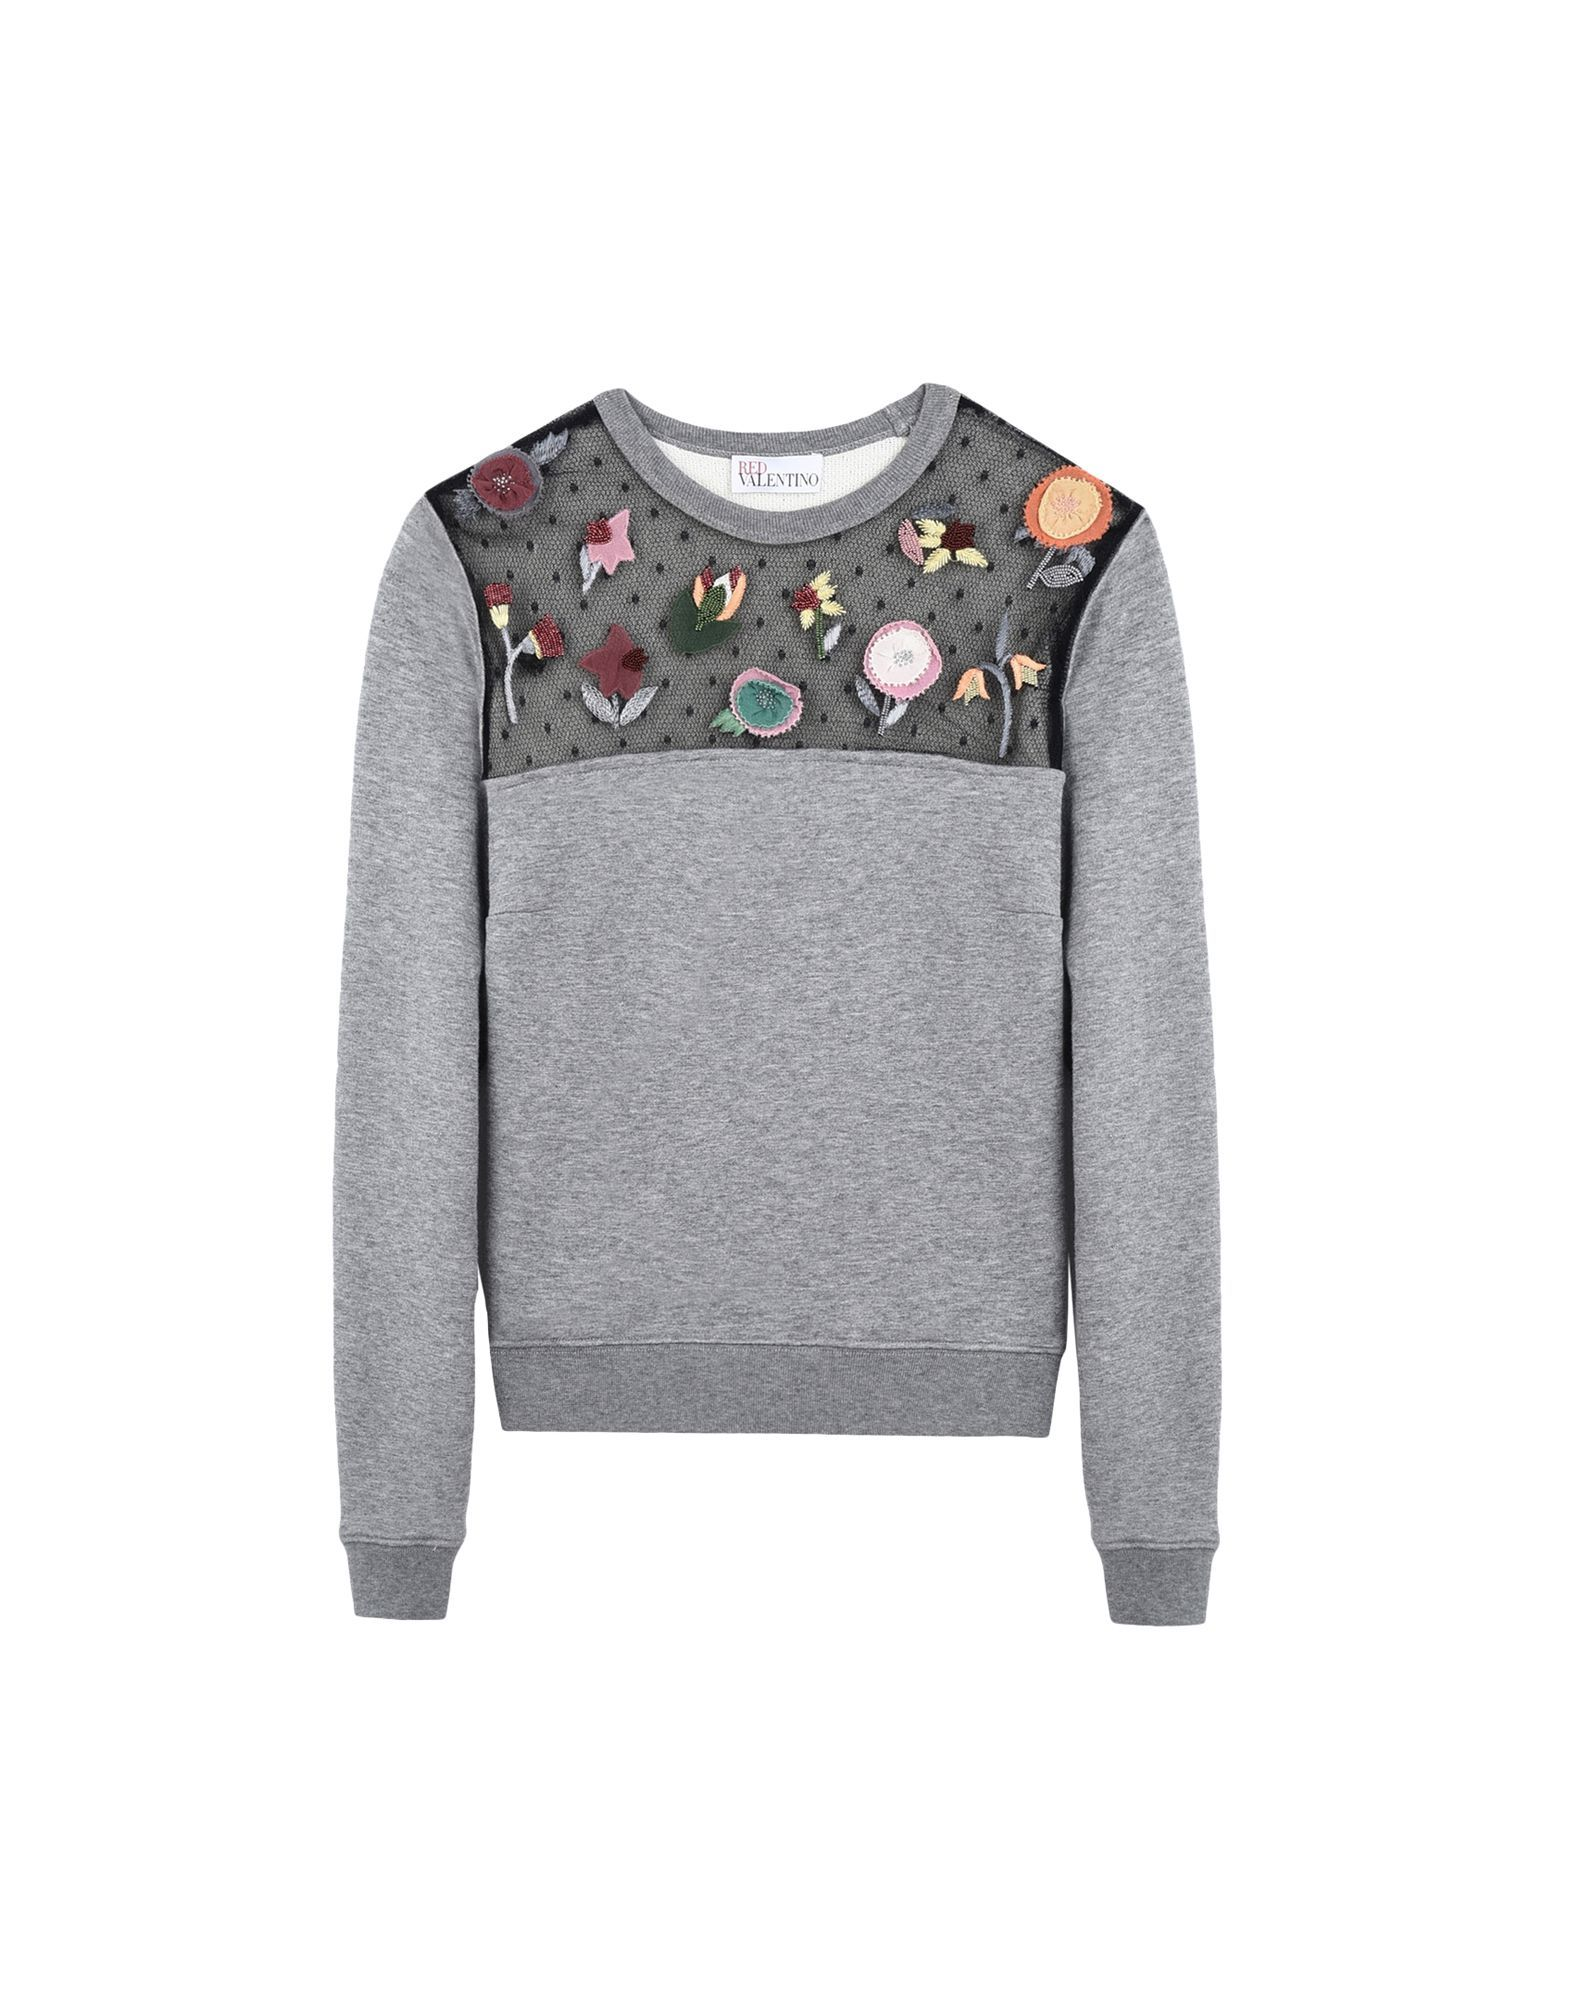 VALENTINE GAUTHIER Cotton-blend embroidered sweatshirt Grey 2724398 Women's  Sweatshirts Promotions vT1XaZvS